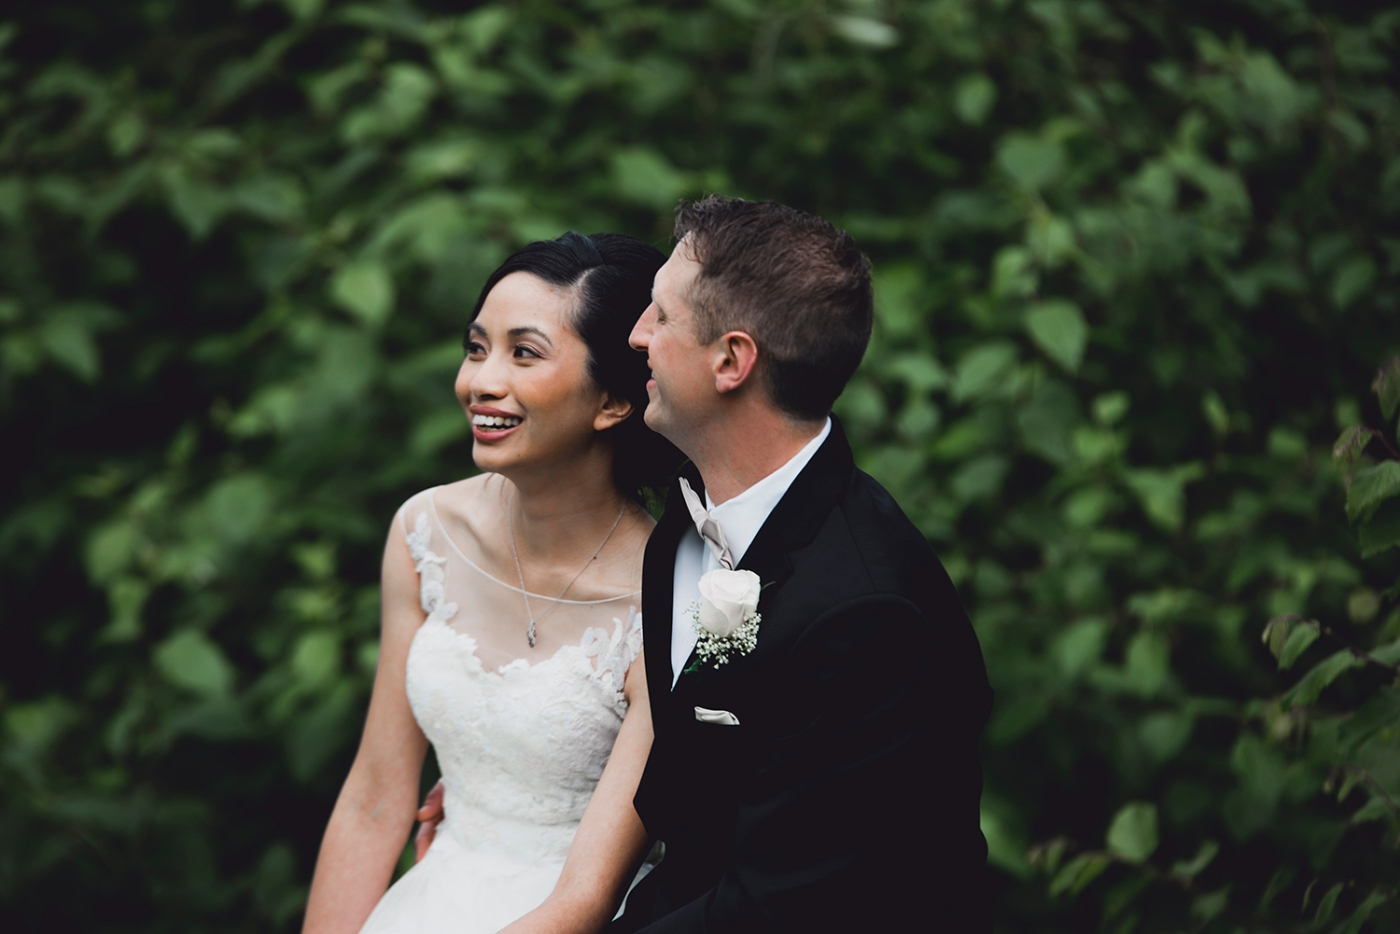 Jane_Speleers_photography_Seattle_Wedding_at_Wild_Rose_estate_2016_Julienne_and_Brian_bride_groom_ DSC_0370